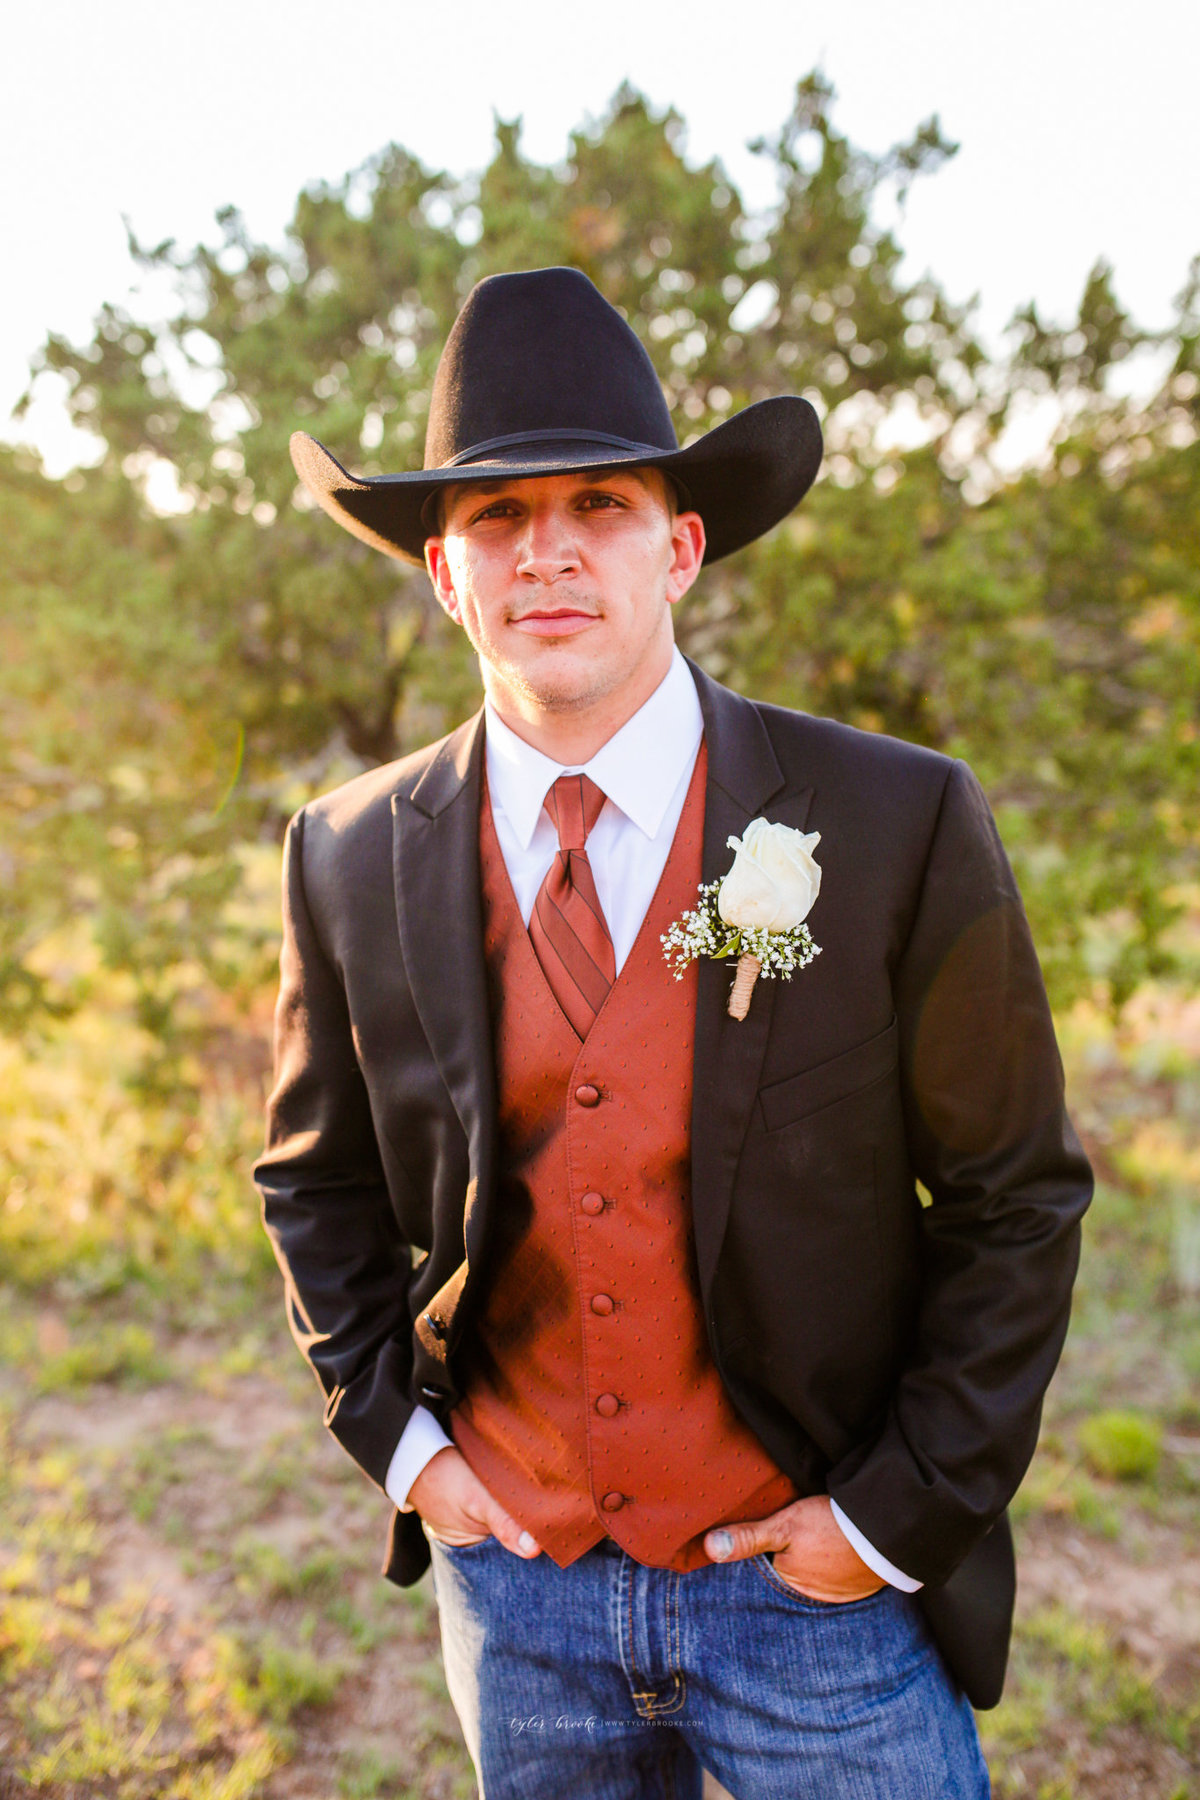 Edgewood-New-Mexico_Country-Wedding-Photographer_www.tylerbrooke.com_Kate-Kauffman-31-of-35